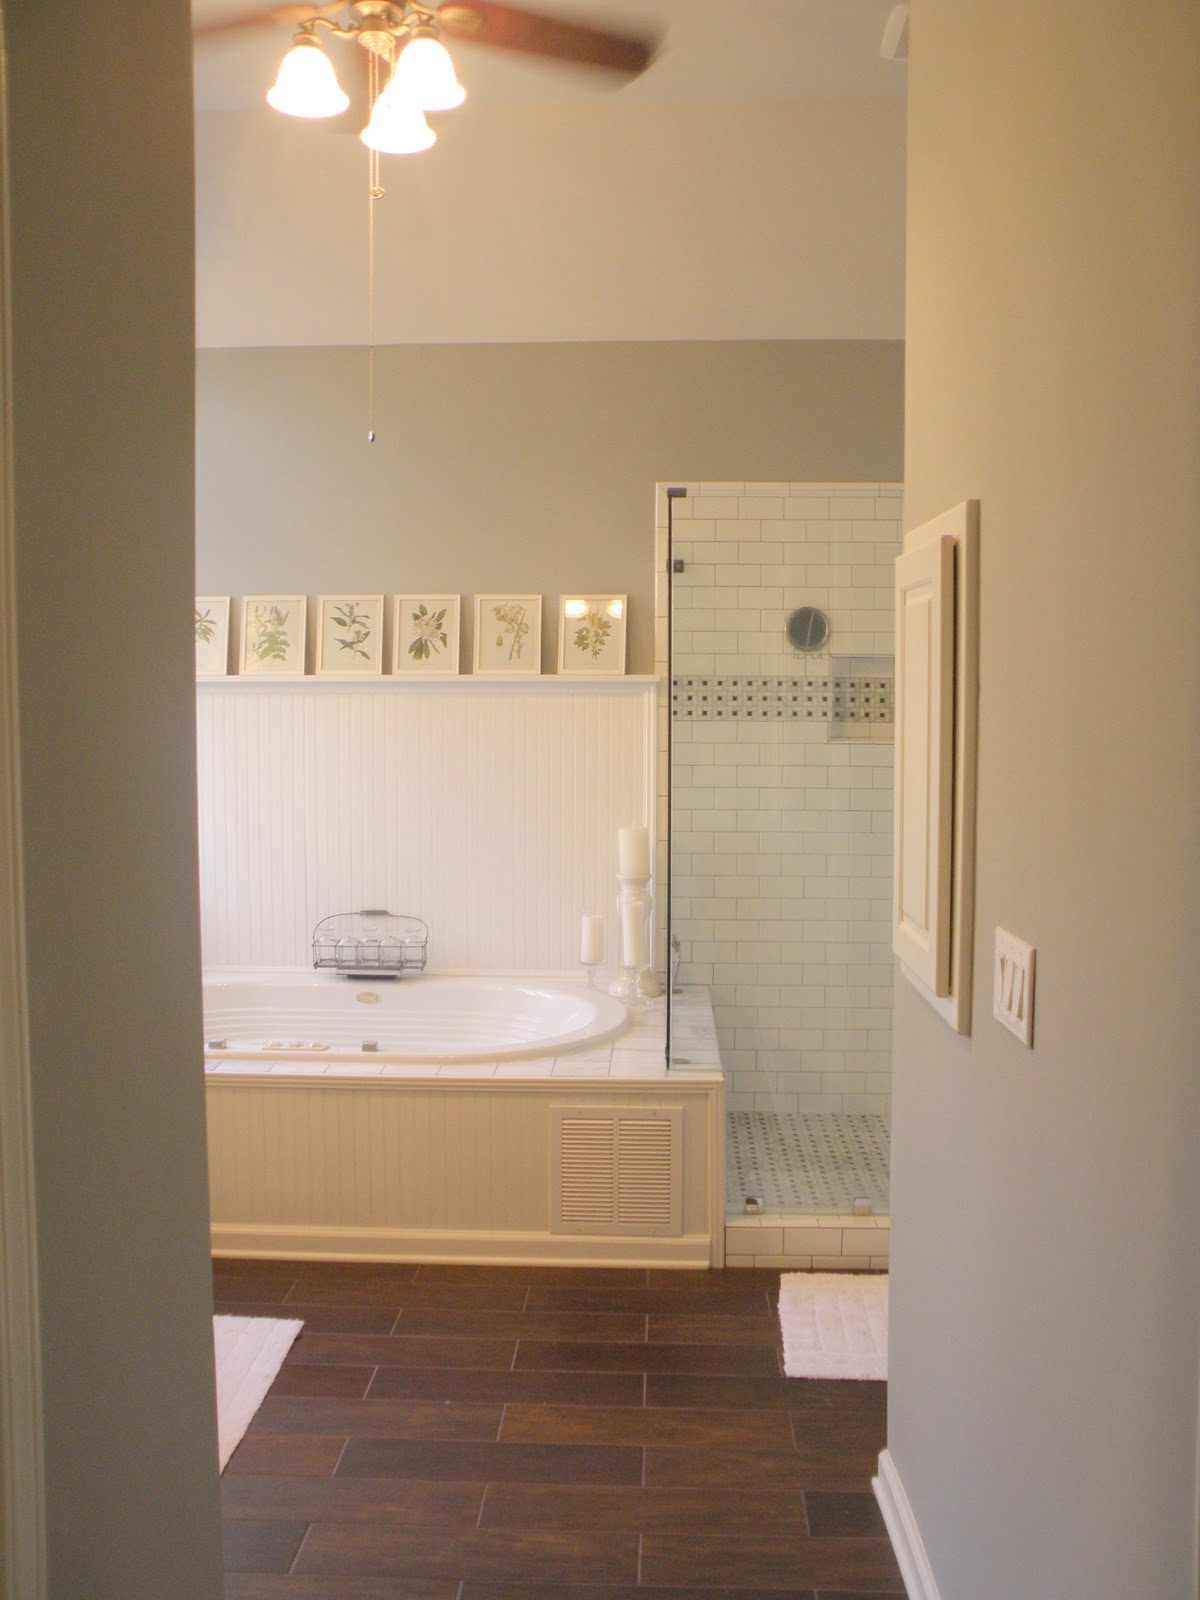 photos las with well vegas remodels small full plus as after of pictures and before master bathroom size remodel